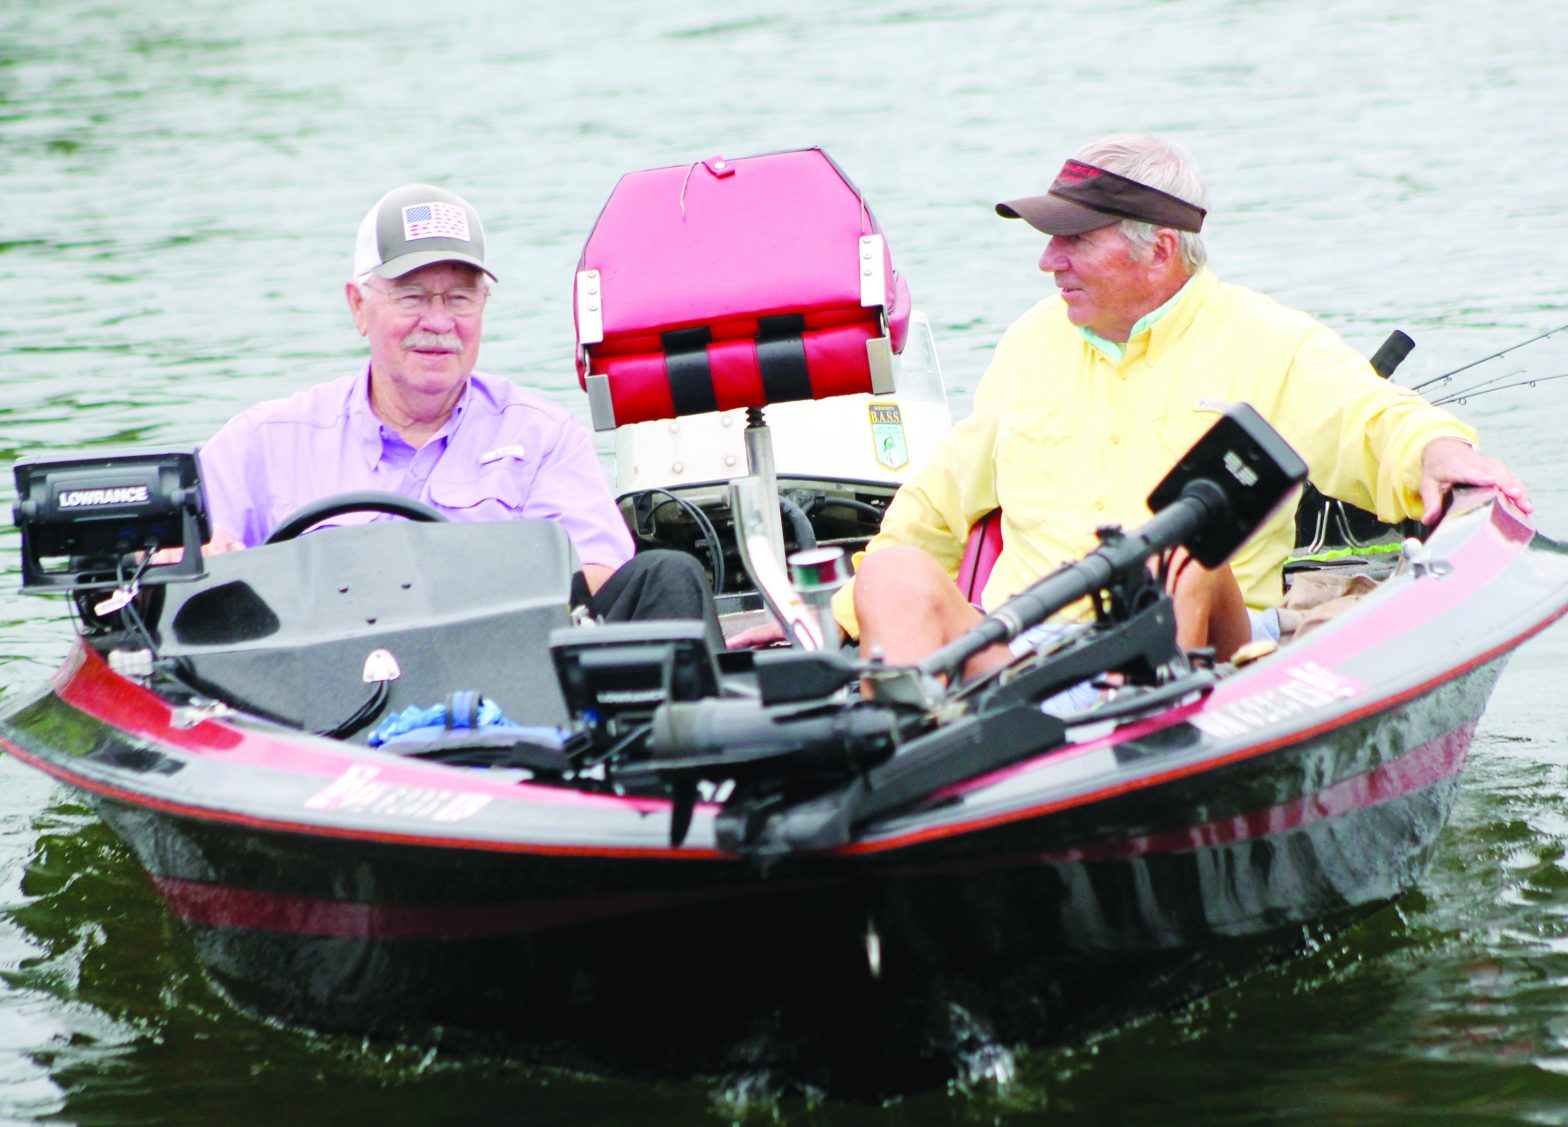 Rainy Day Bass: Wilkinson and Olson Brave the Wet Conditions, Catch 24 Anyway